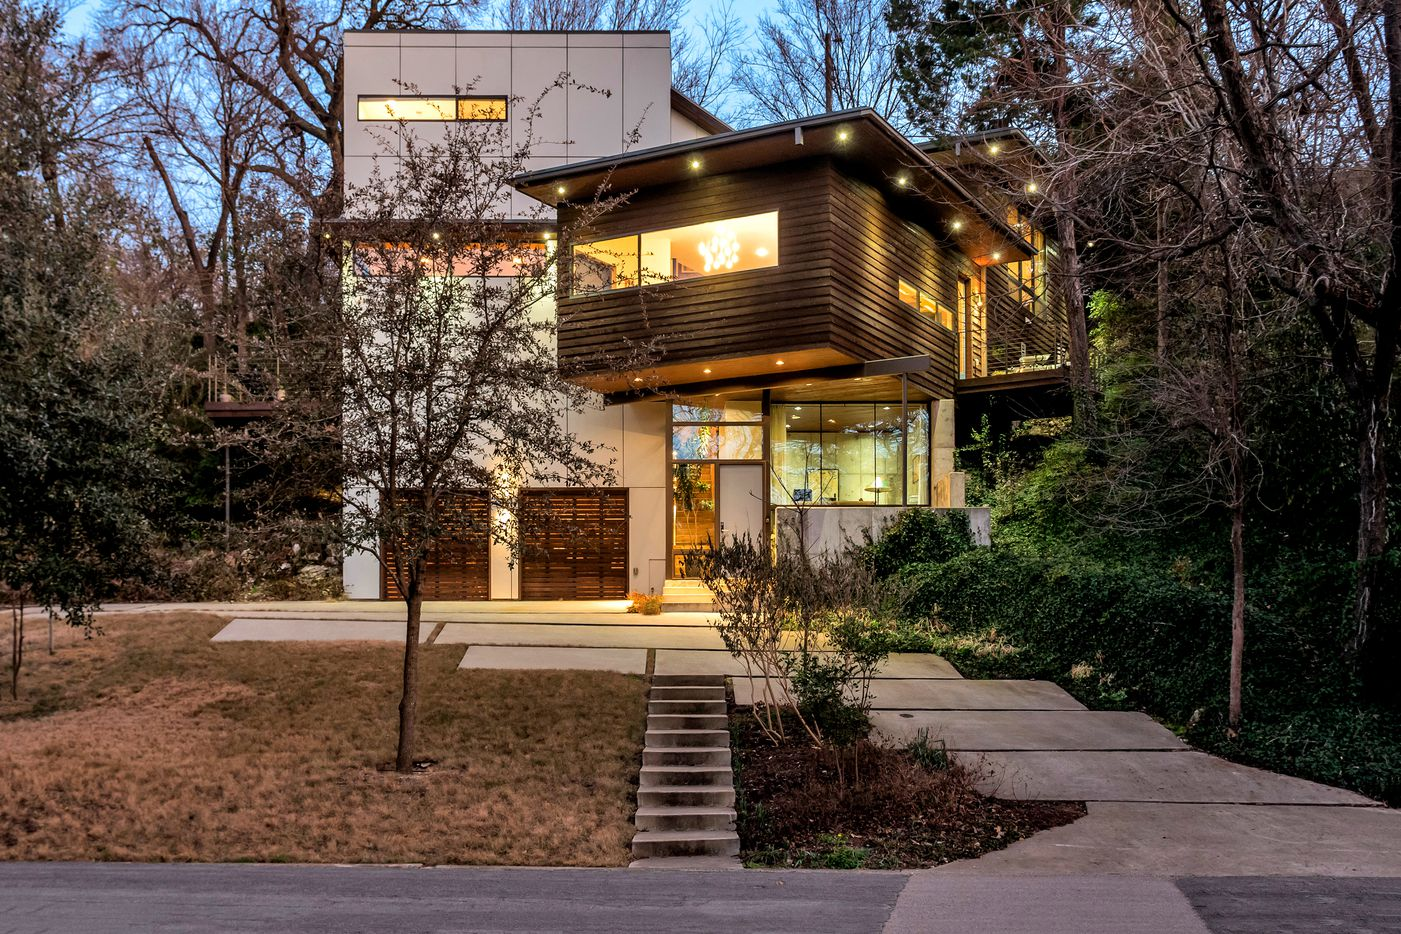 Take a look at the home at 434 W. Greenbriar Lane in Dallas, TX.